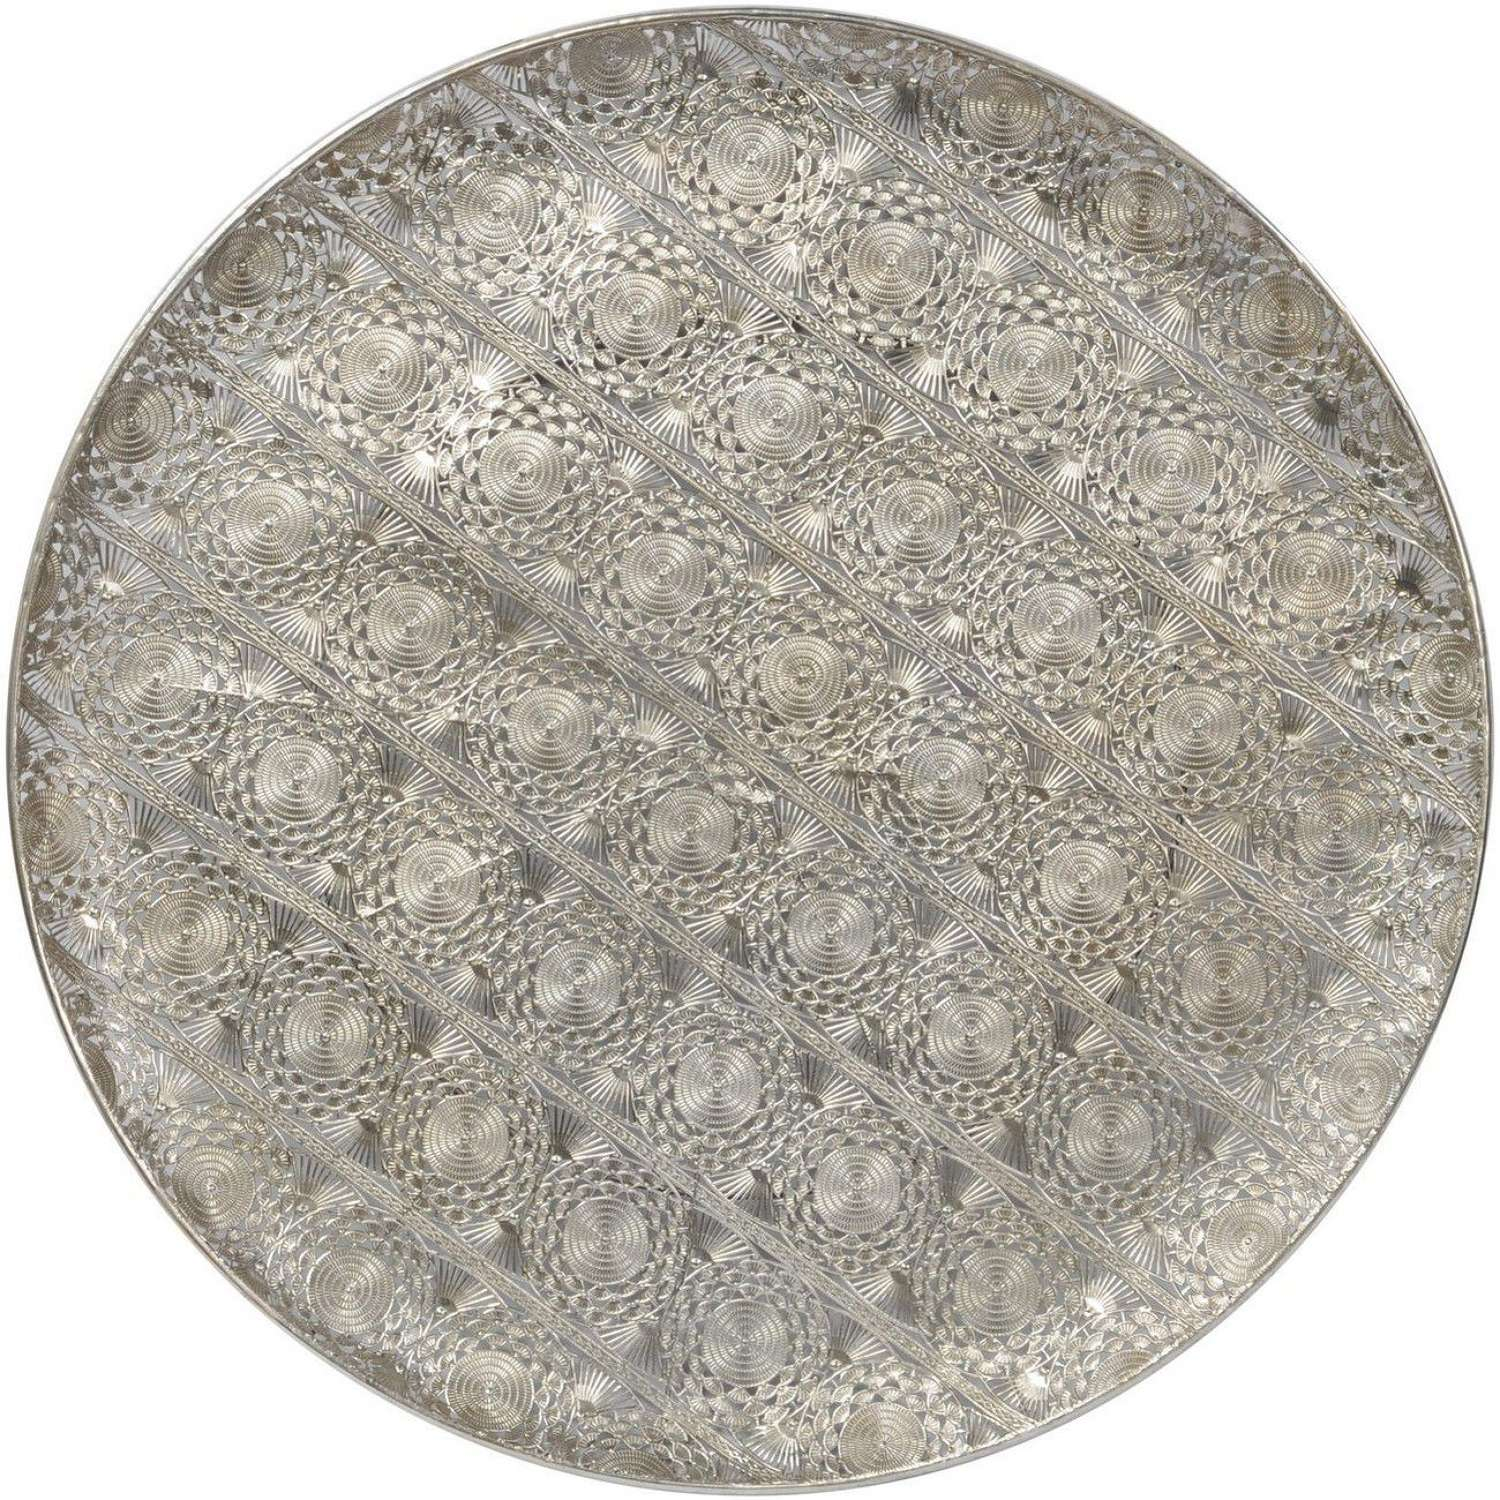 Large Filigree Wall Disc - Silver